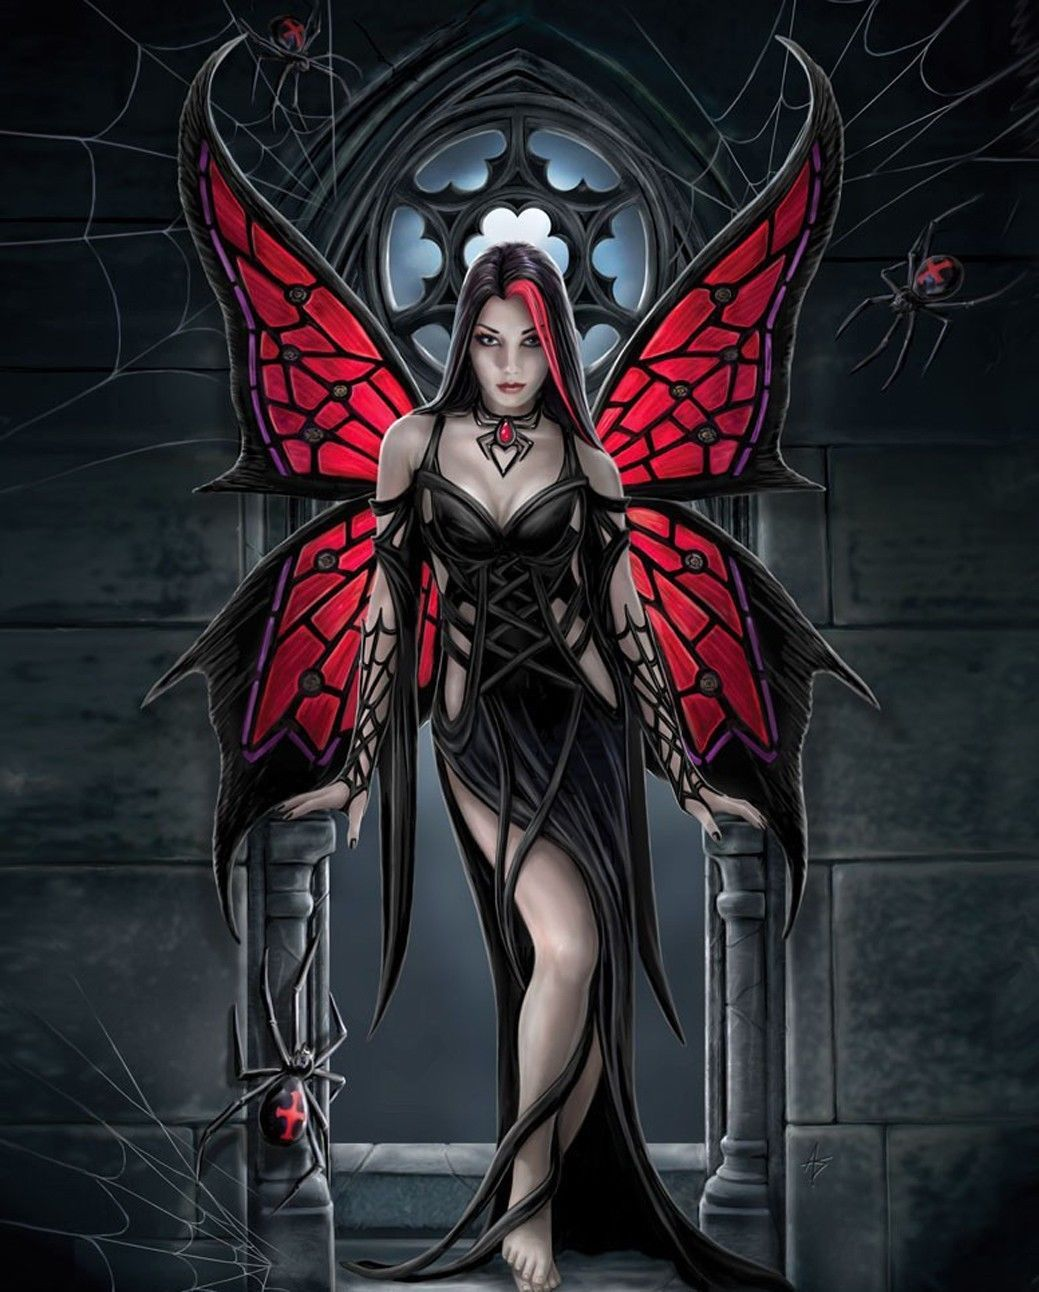 Anne Stokes Angel Rose Wall Print POSTER Decor 32x24